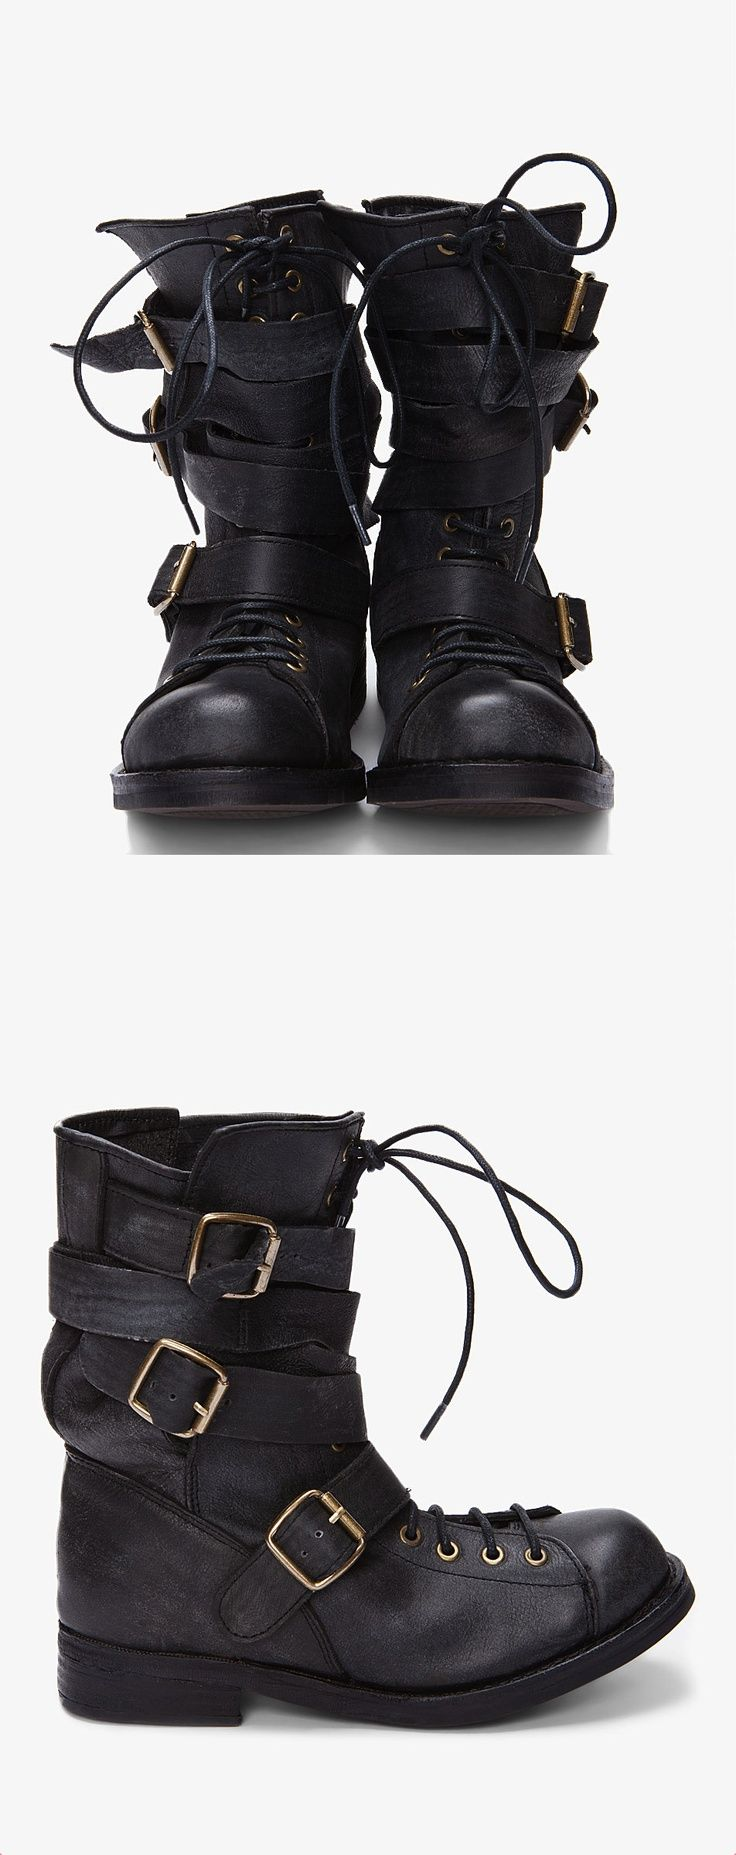 Black Cracked Low Army Boots | Jeffrey campbell, Man boots and ...